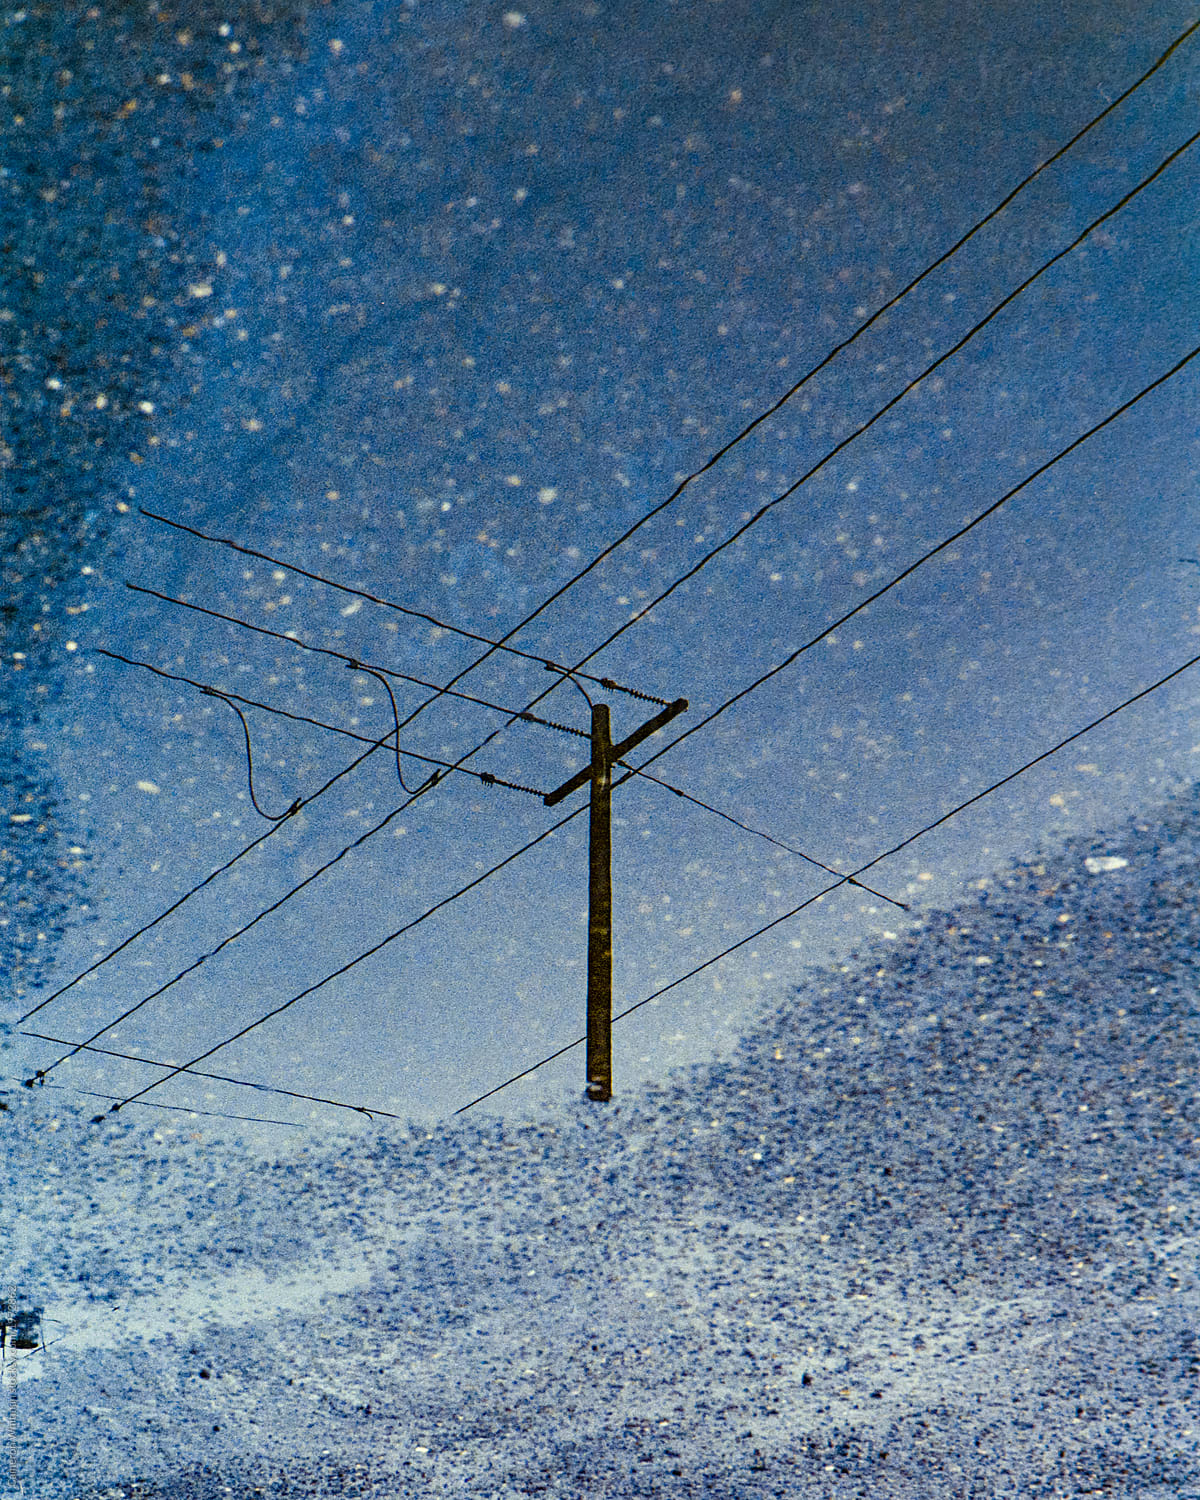 Telephone Wires Crossing In A Puddle Reflection Stocksy United Wiring Cable By Cameron Whitman For